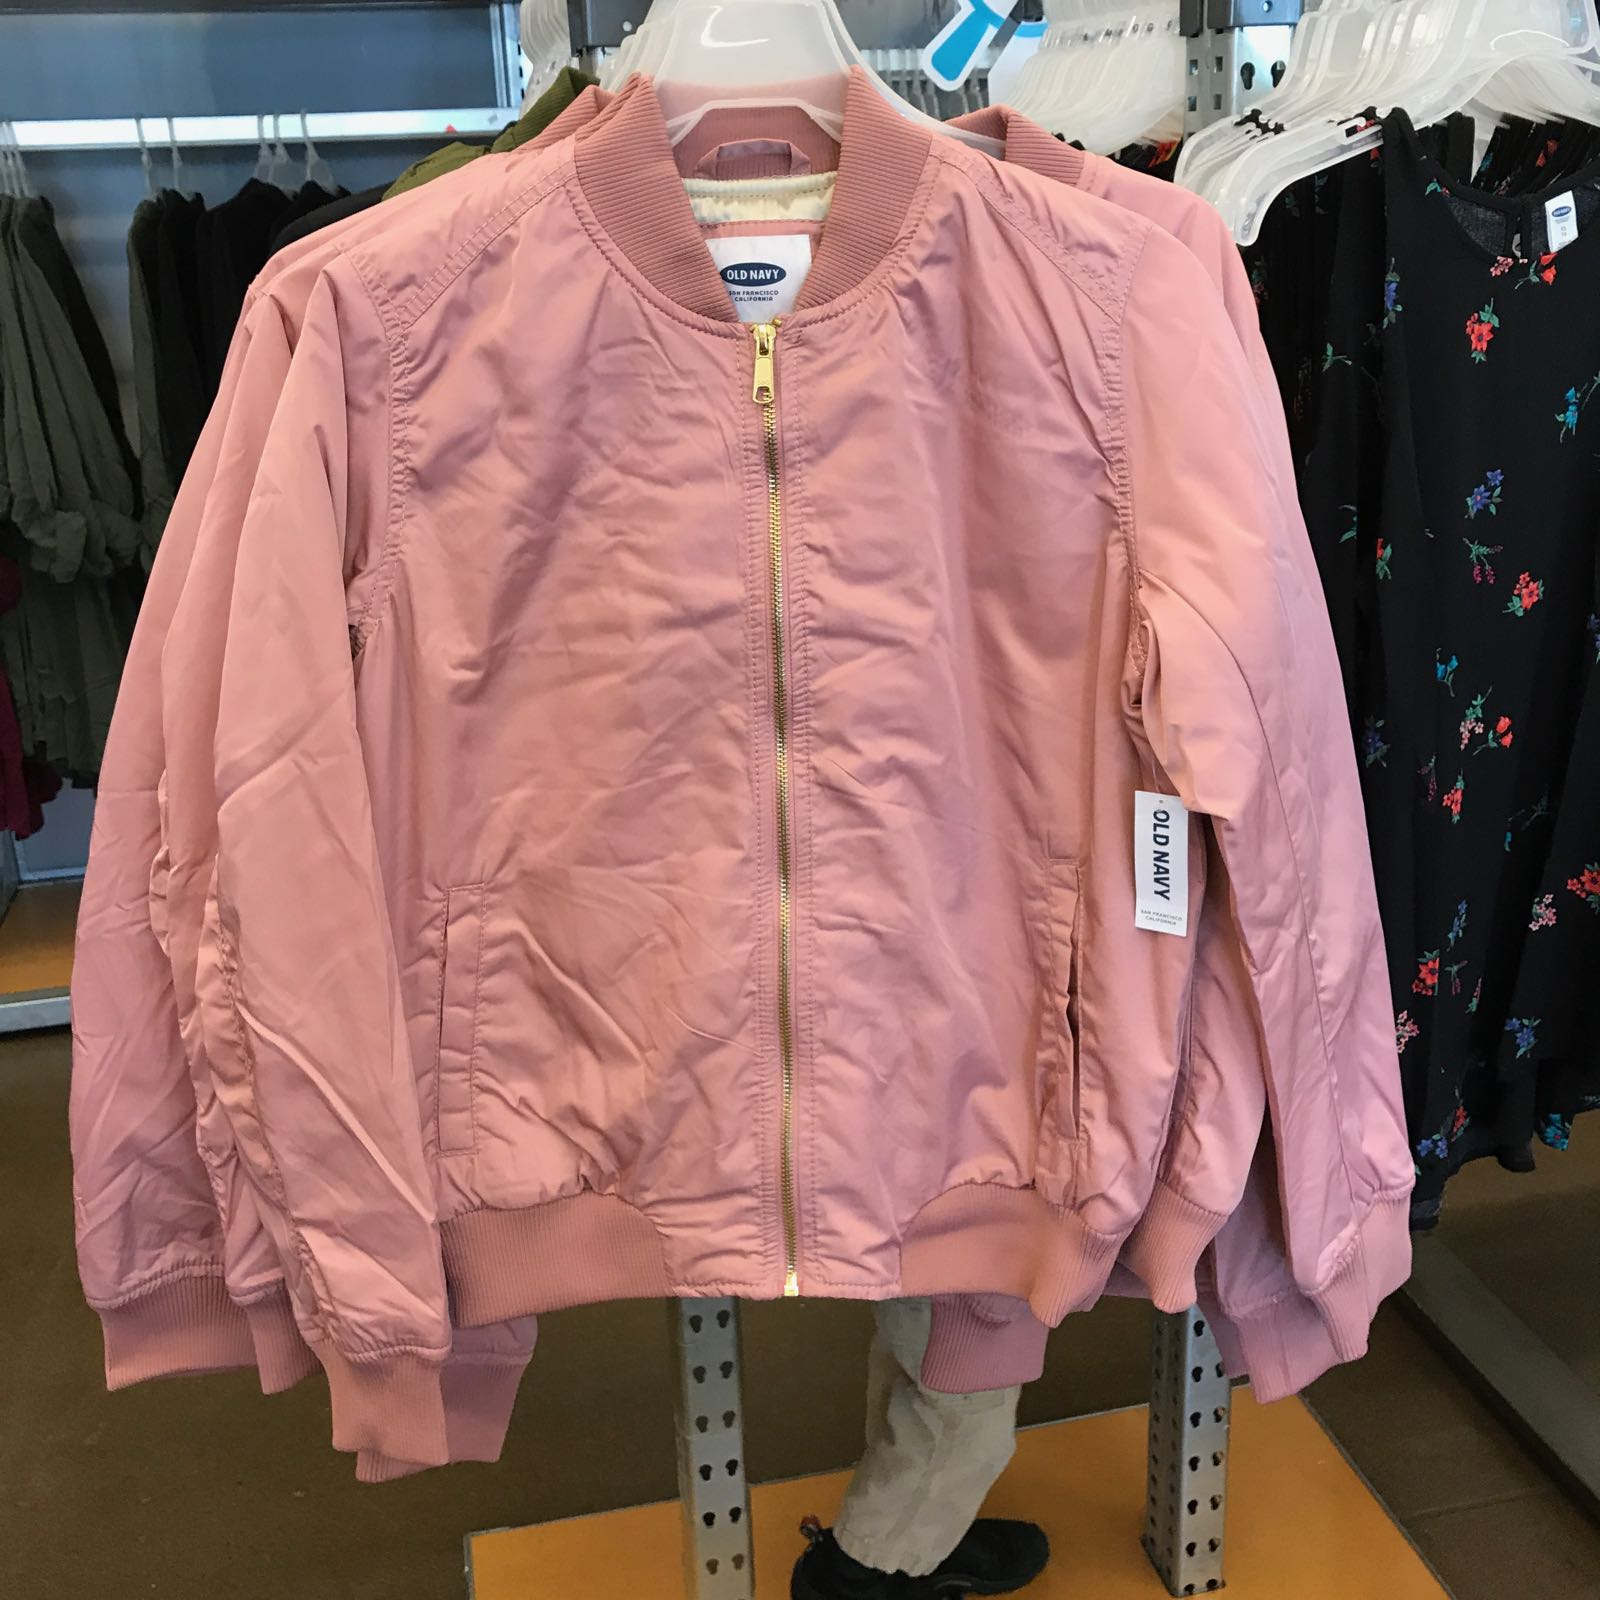 Fall finds at Old Navy